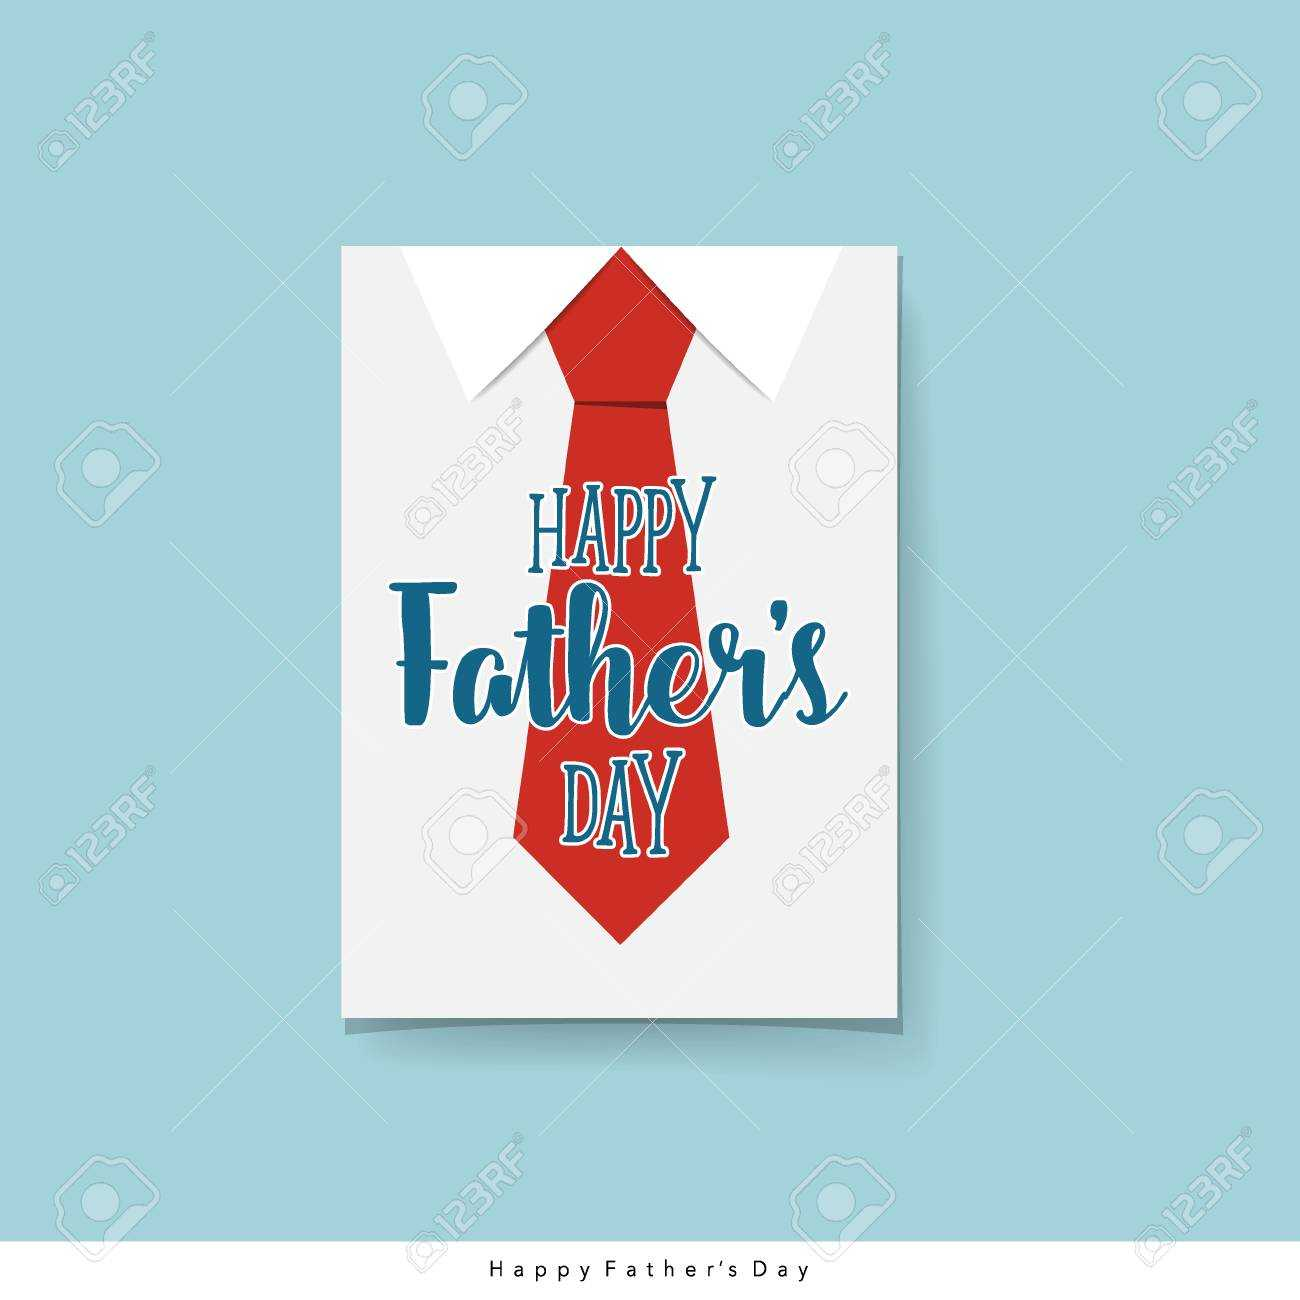 Happy Fathers Day Card Design With Big Tie. Vector Illustration. Throughout Fathers Day Card Template